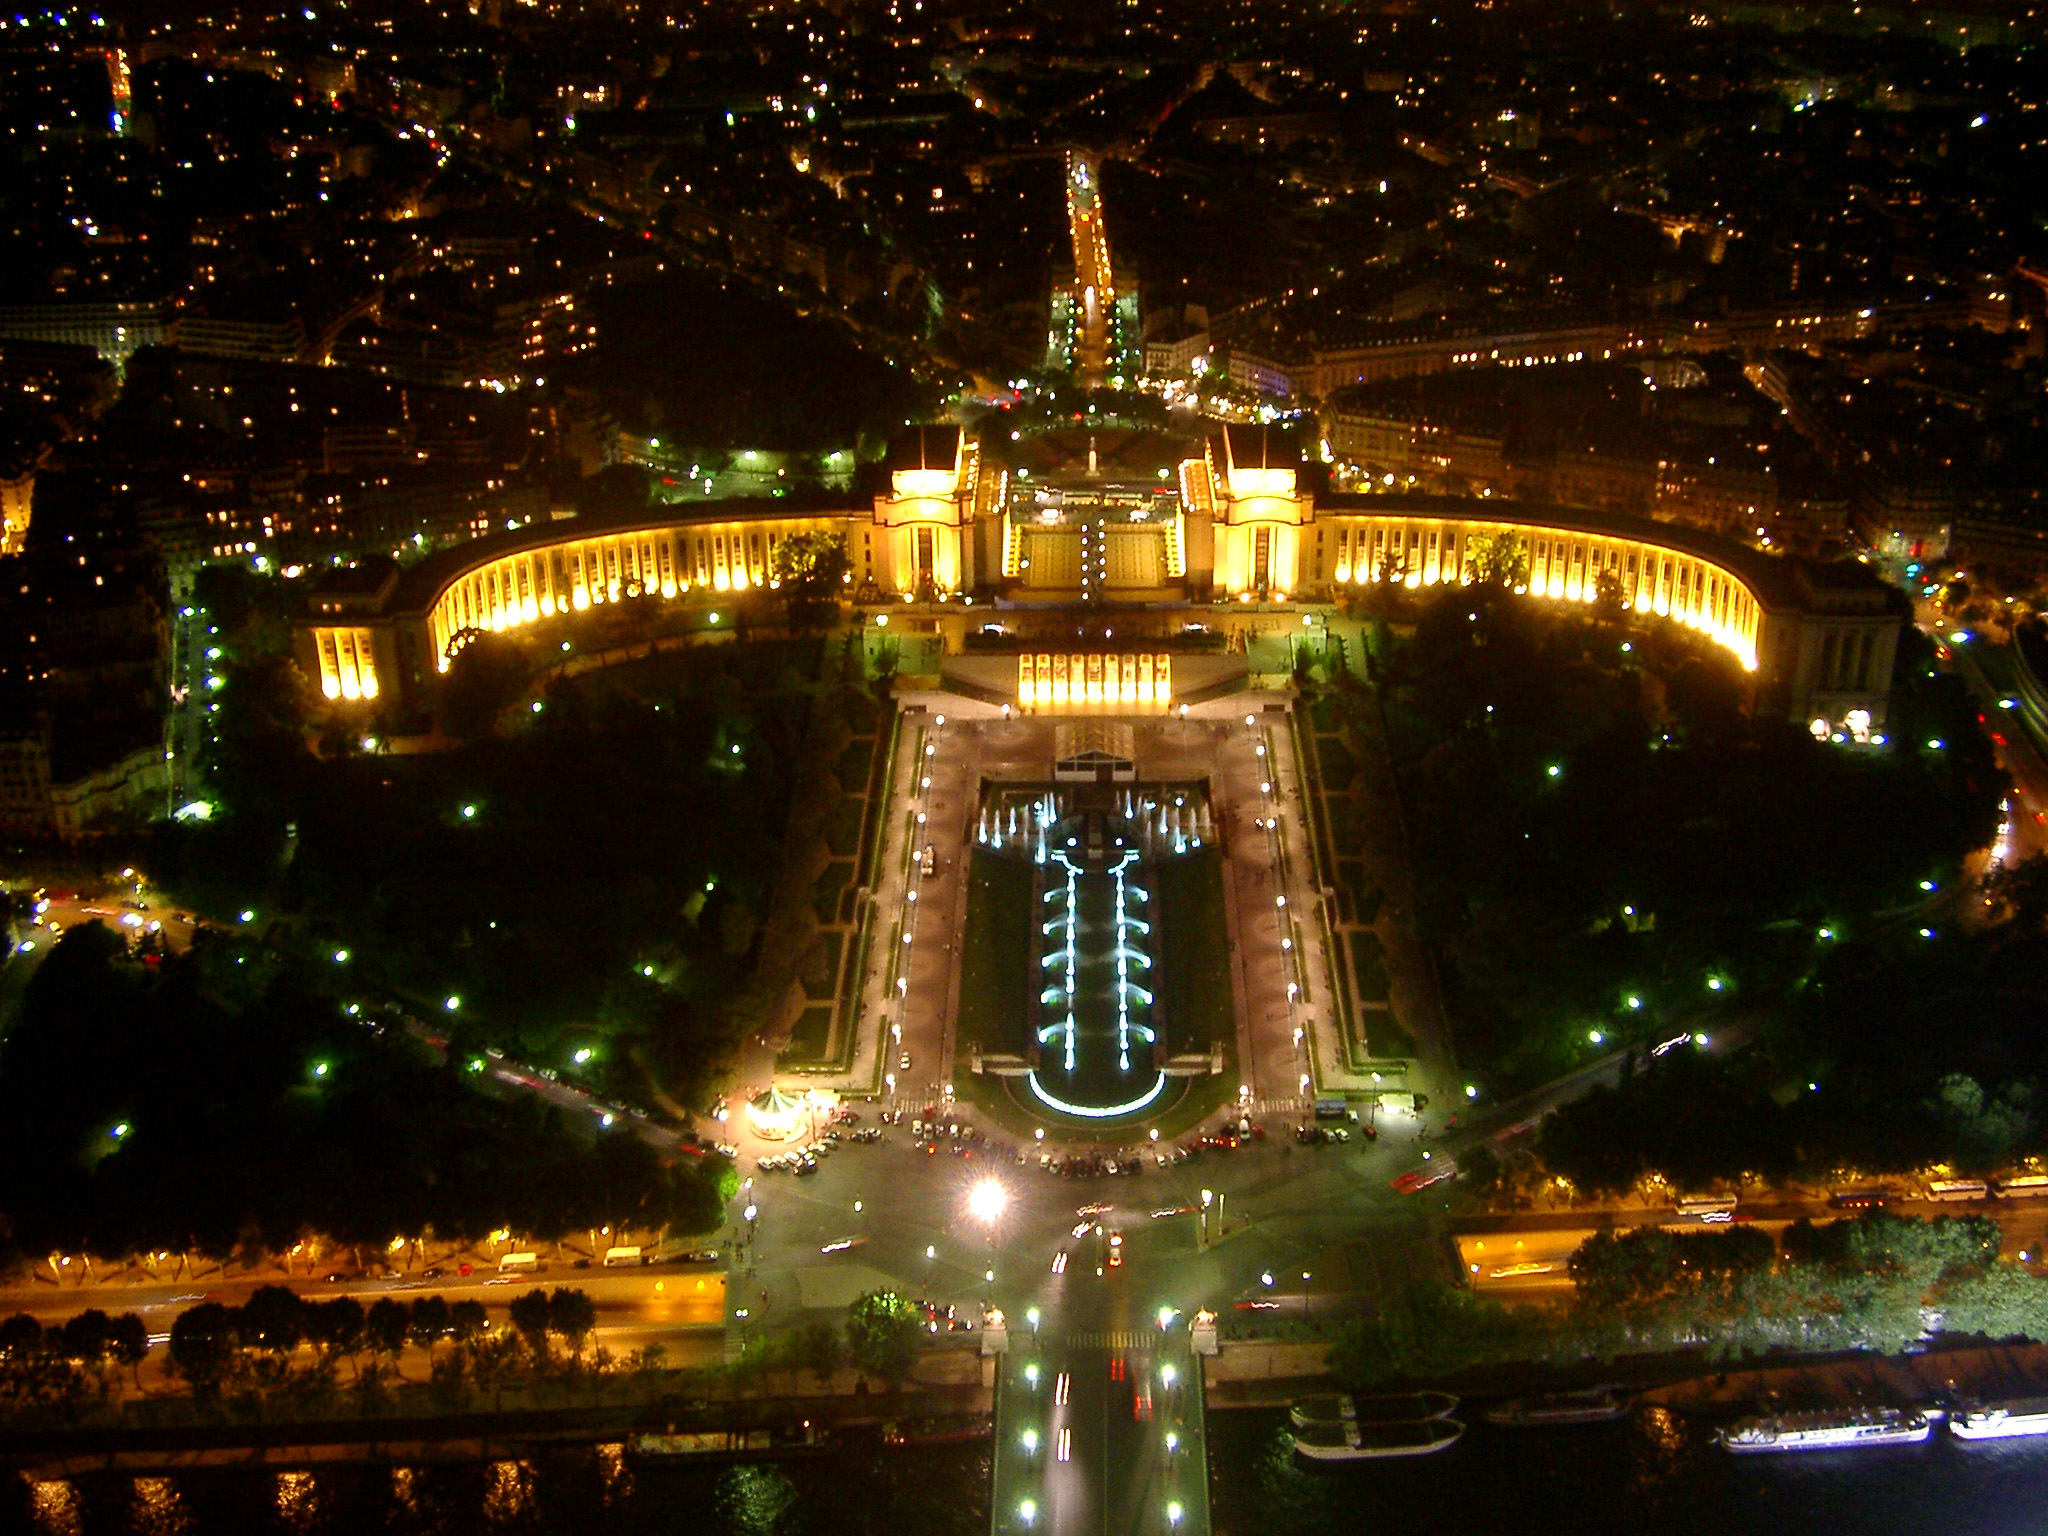 Beautiful City Lights at Paris at Night Time in Aerial View. Captured in Extensive View.